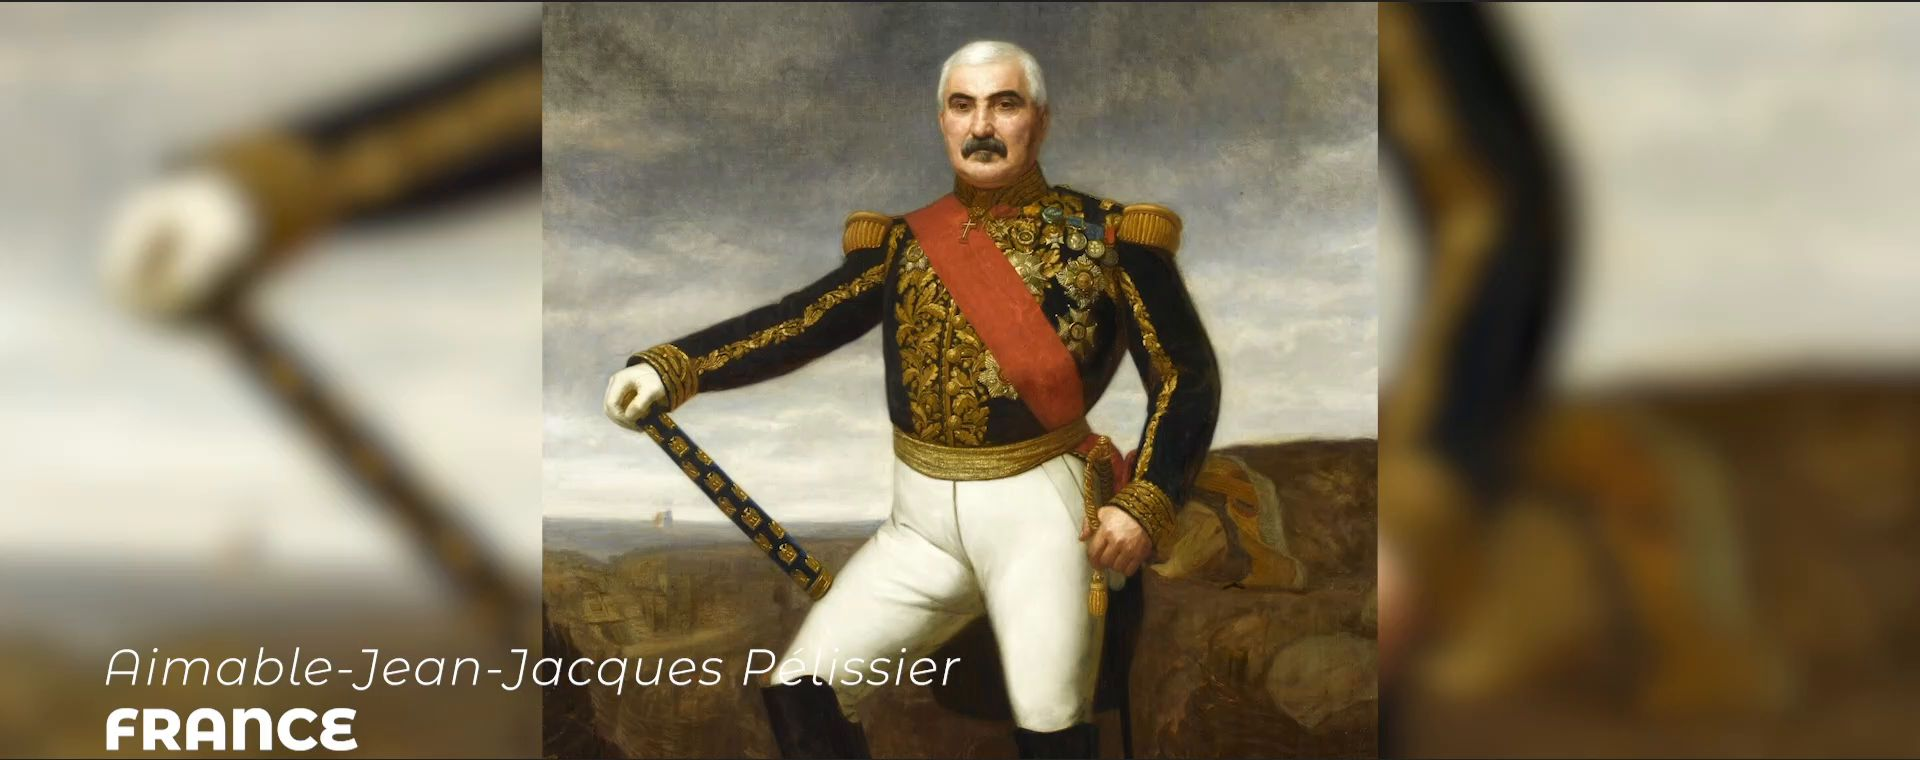 AIMABLEJEANJACQUES PELISSIER